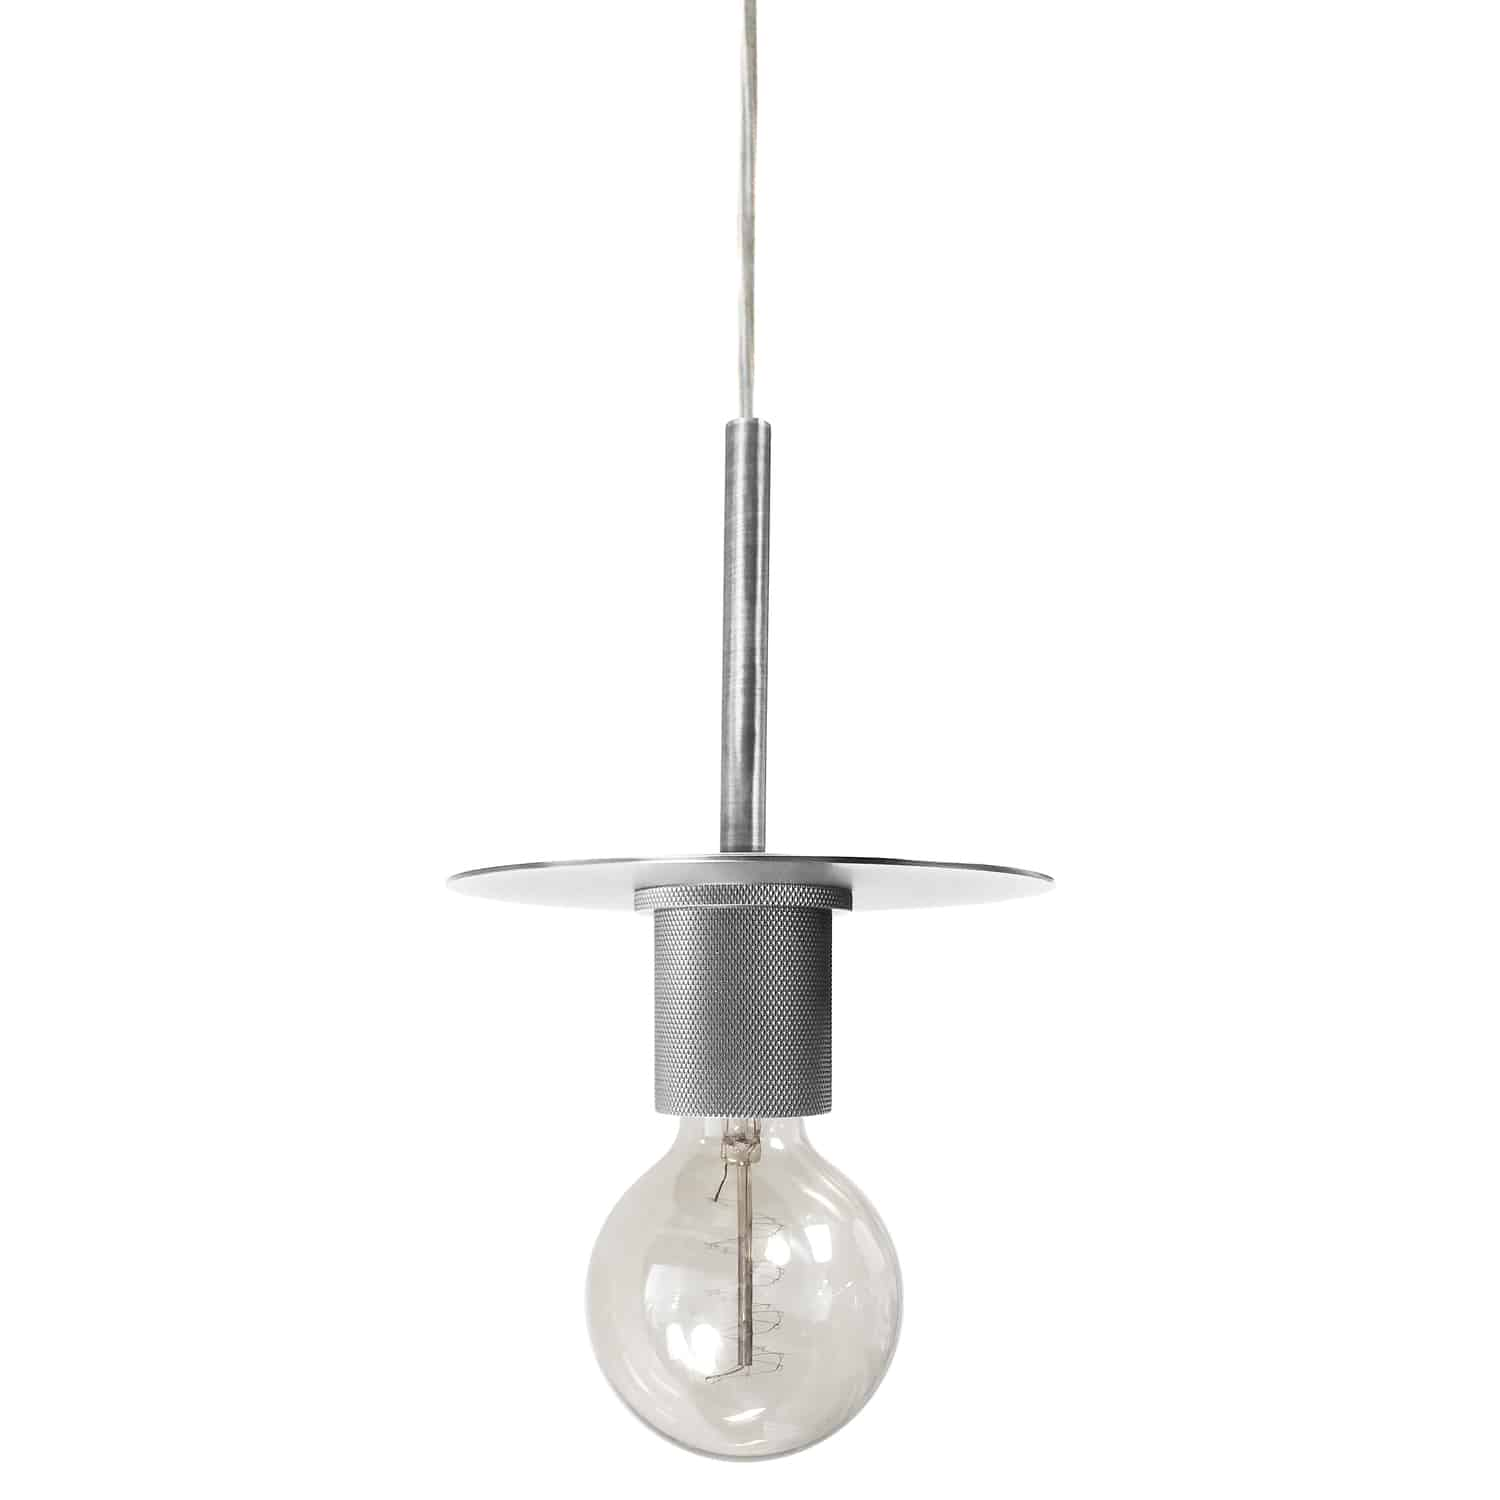 1 Light Incandescent Pendant, Satin Chrome